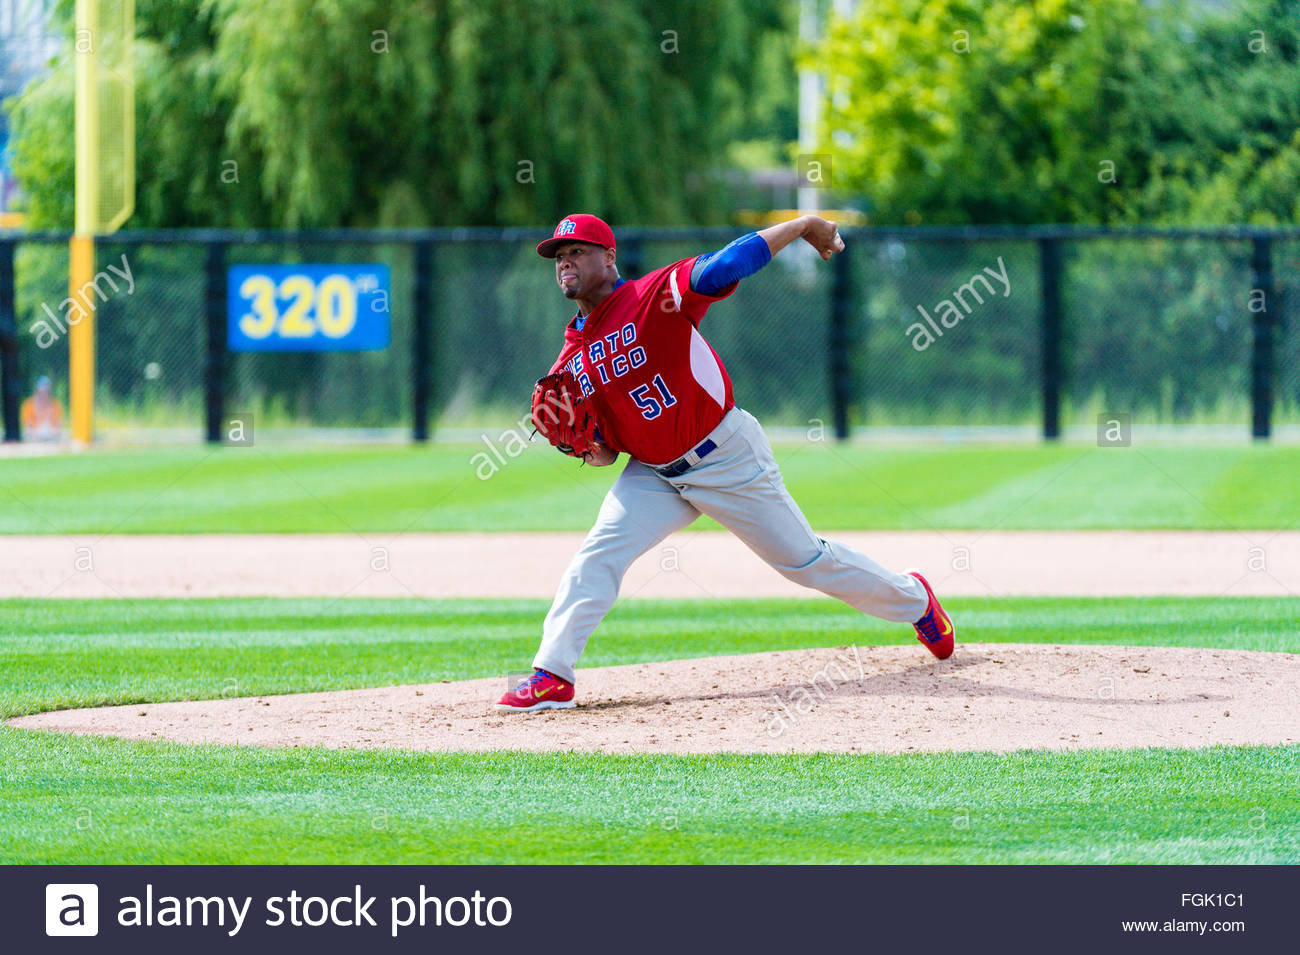 Various movements and grips of a baseball Puerto Rico pitcher during the Toronto Panam or Panamerican games. - Stock Image